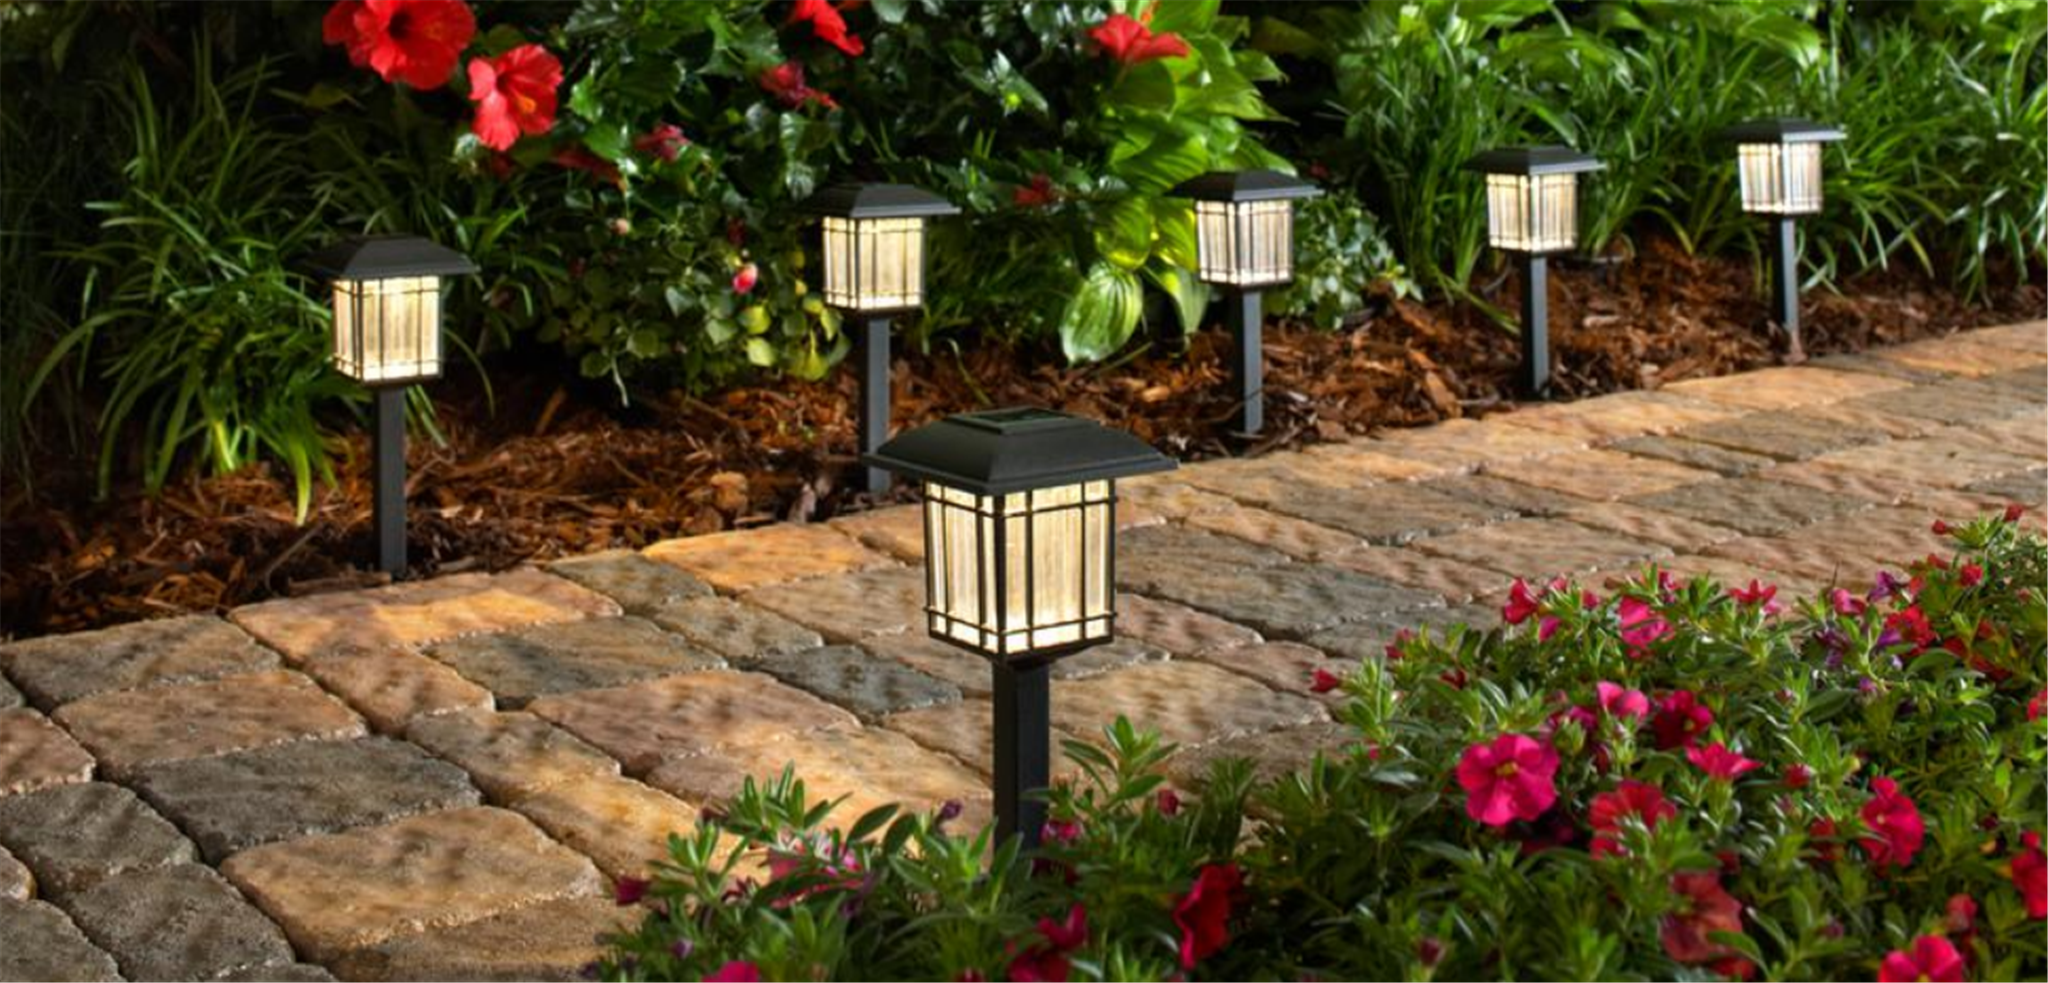 Home Depot – 6 Pack Hampton Bay Solar LED Pathway Lights Only $10.78, Reg $13.48 + Free Store Pickup!